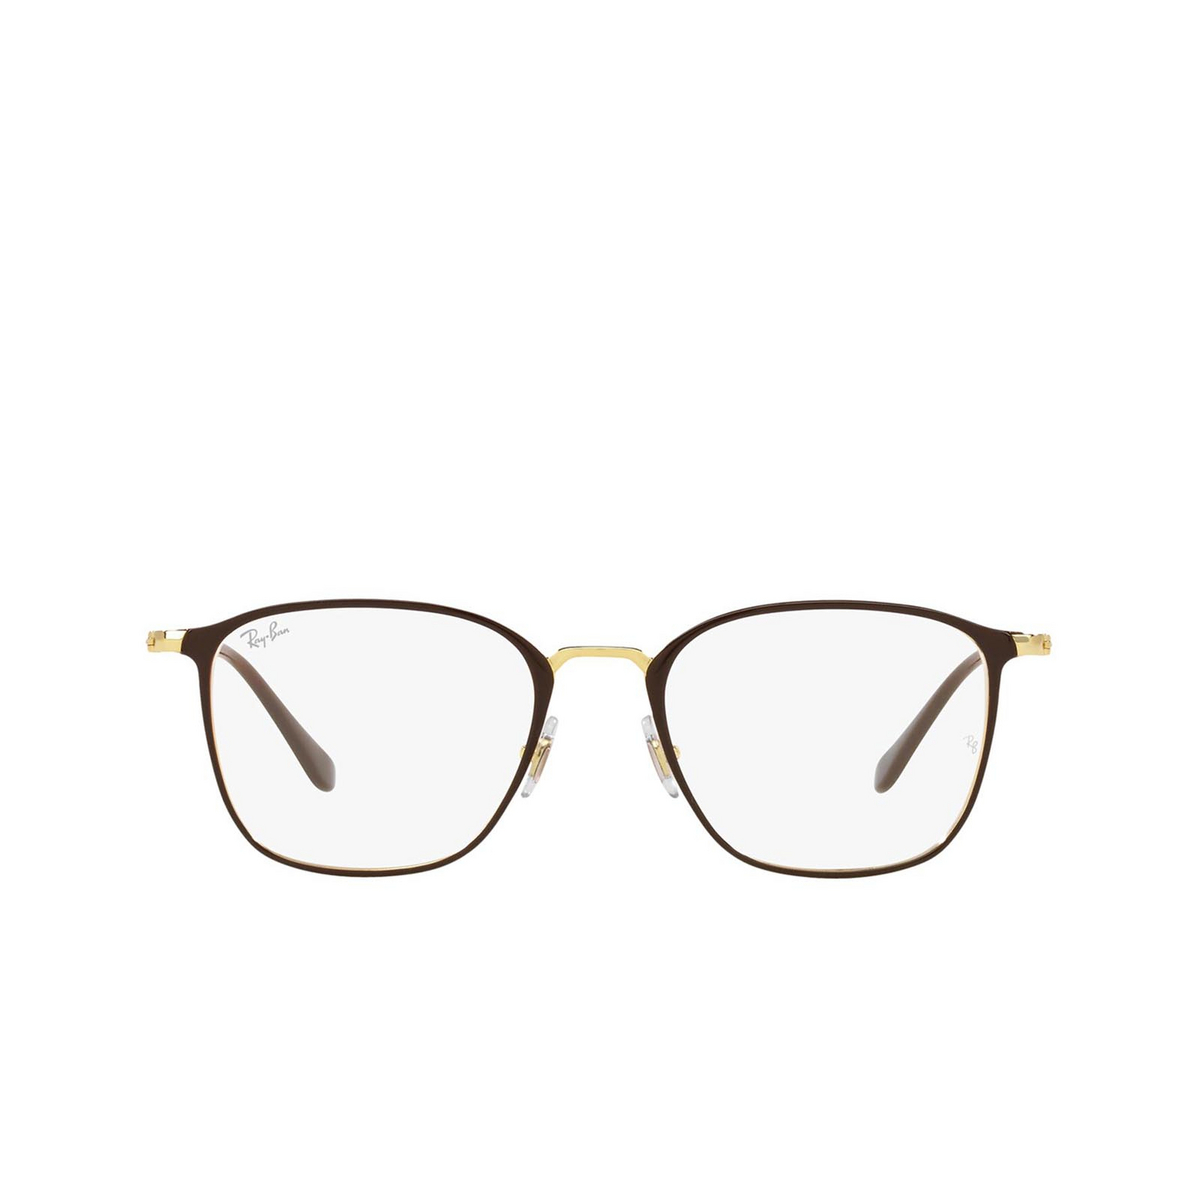 Ray-Ban® Square Eyeglasses: RX6466 color Brown On Arista 2905.